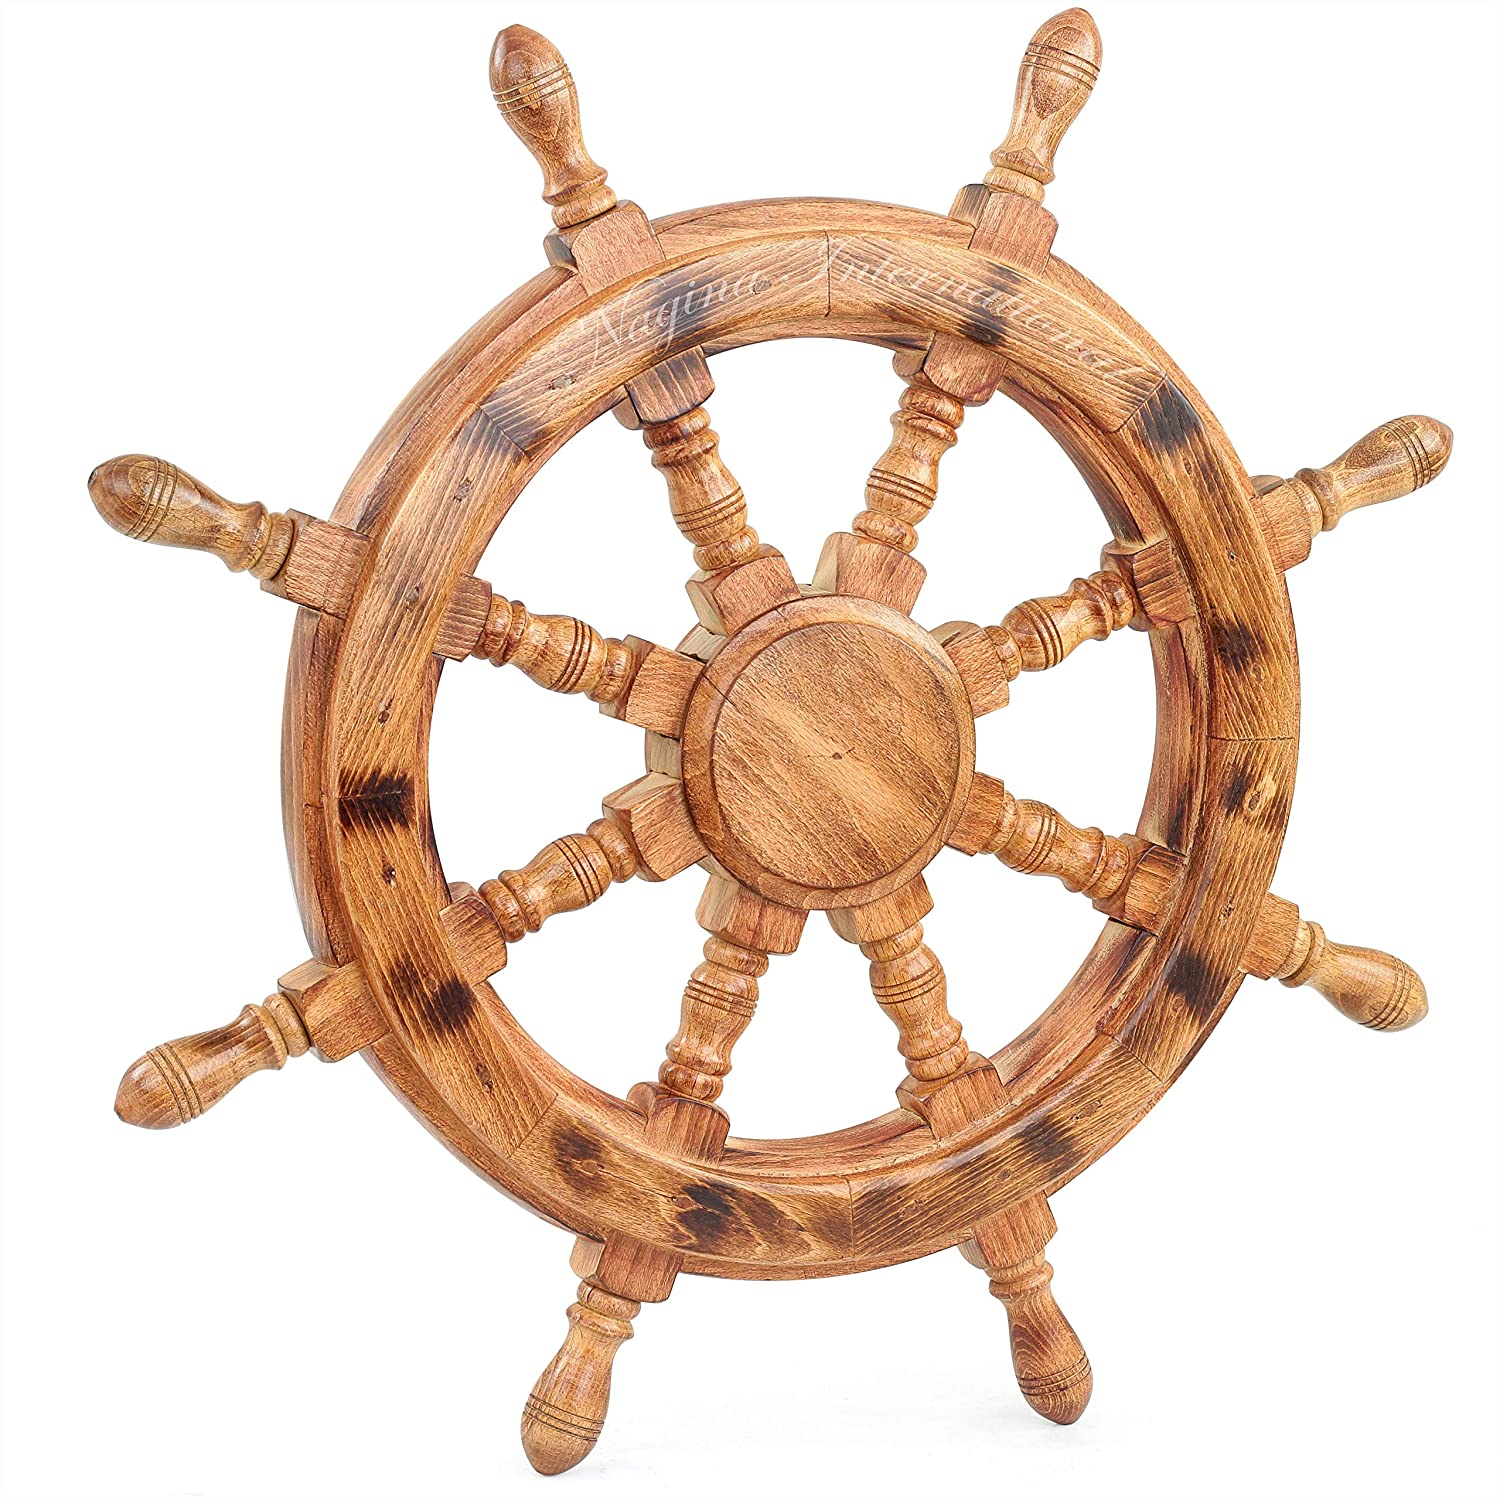 Nautical Wooden Ship Wheel Handcrafted Premium Heavy Wall Decor Accents & Sculptures | Rustic Primitive Antique Finish | Wall Hanging Ideas | Maritime Captain's Ocean Themed Gifts (Ochre) (24 Inches)